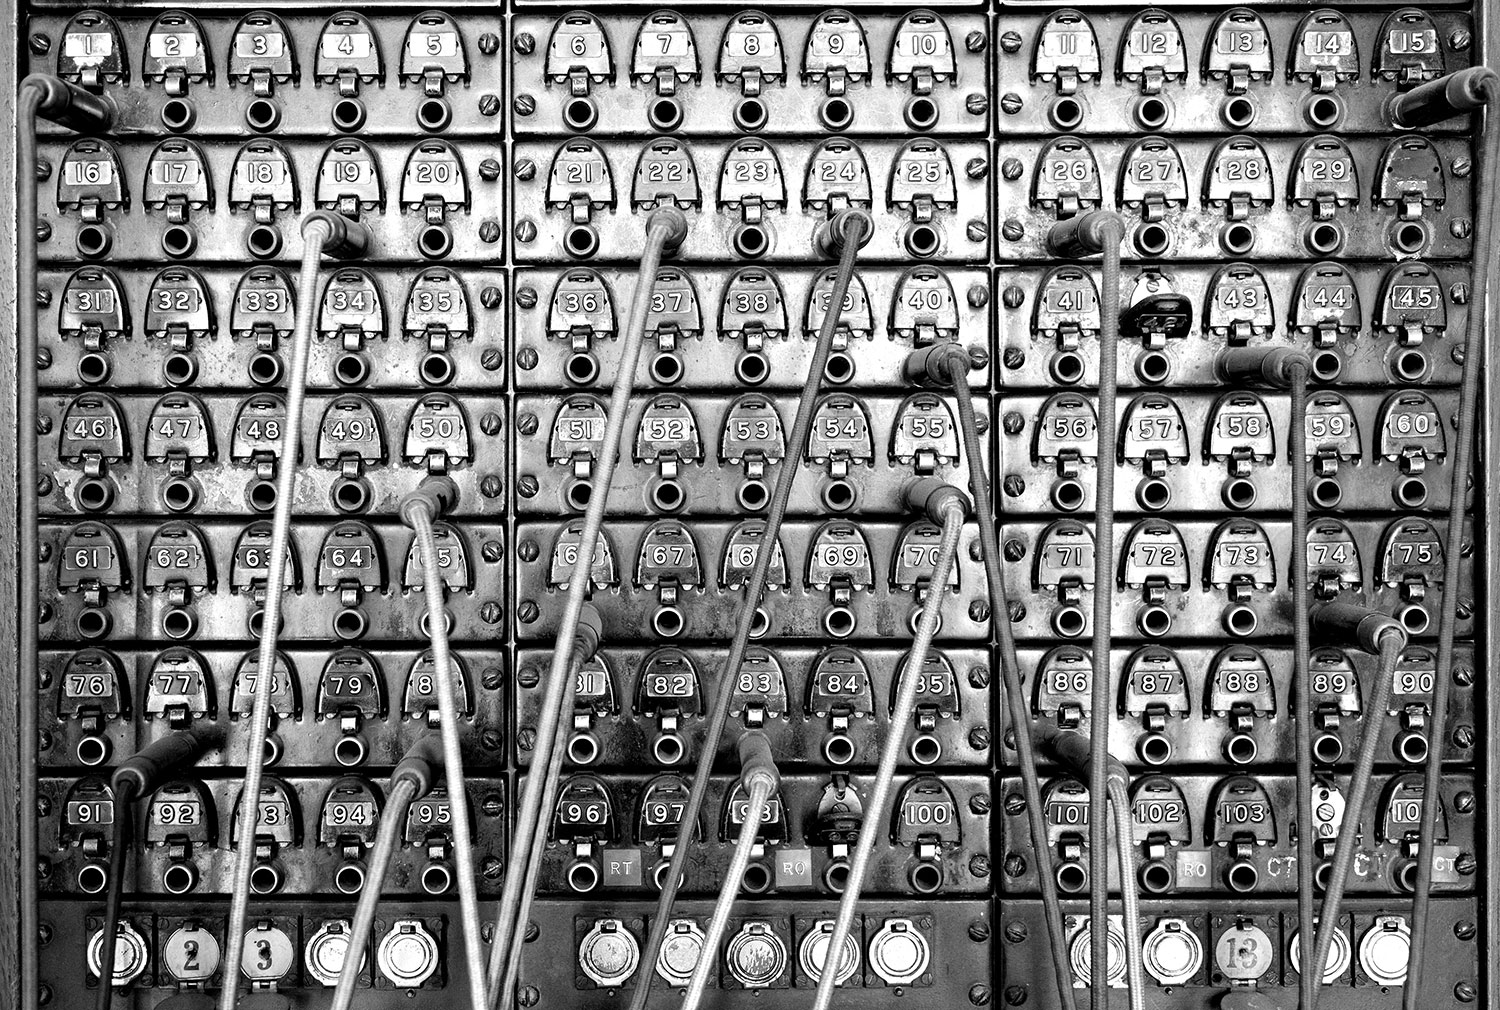 Telemarketing - Old Fashioned Switch Board